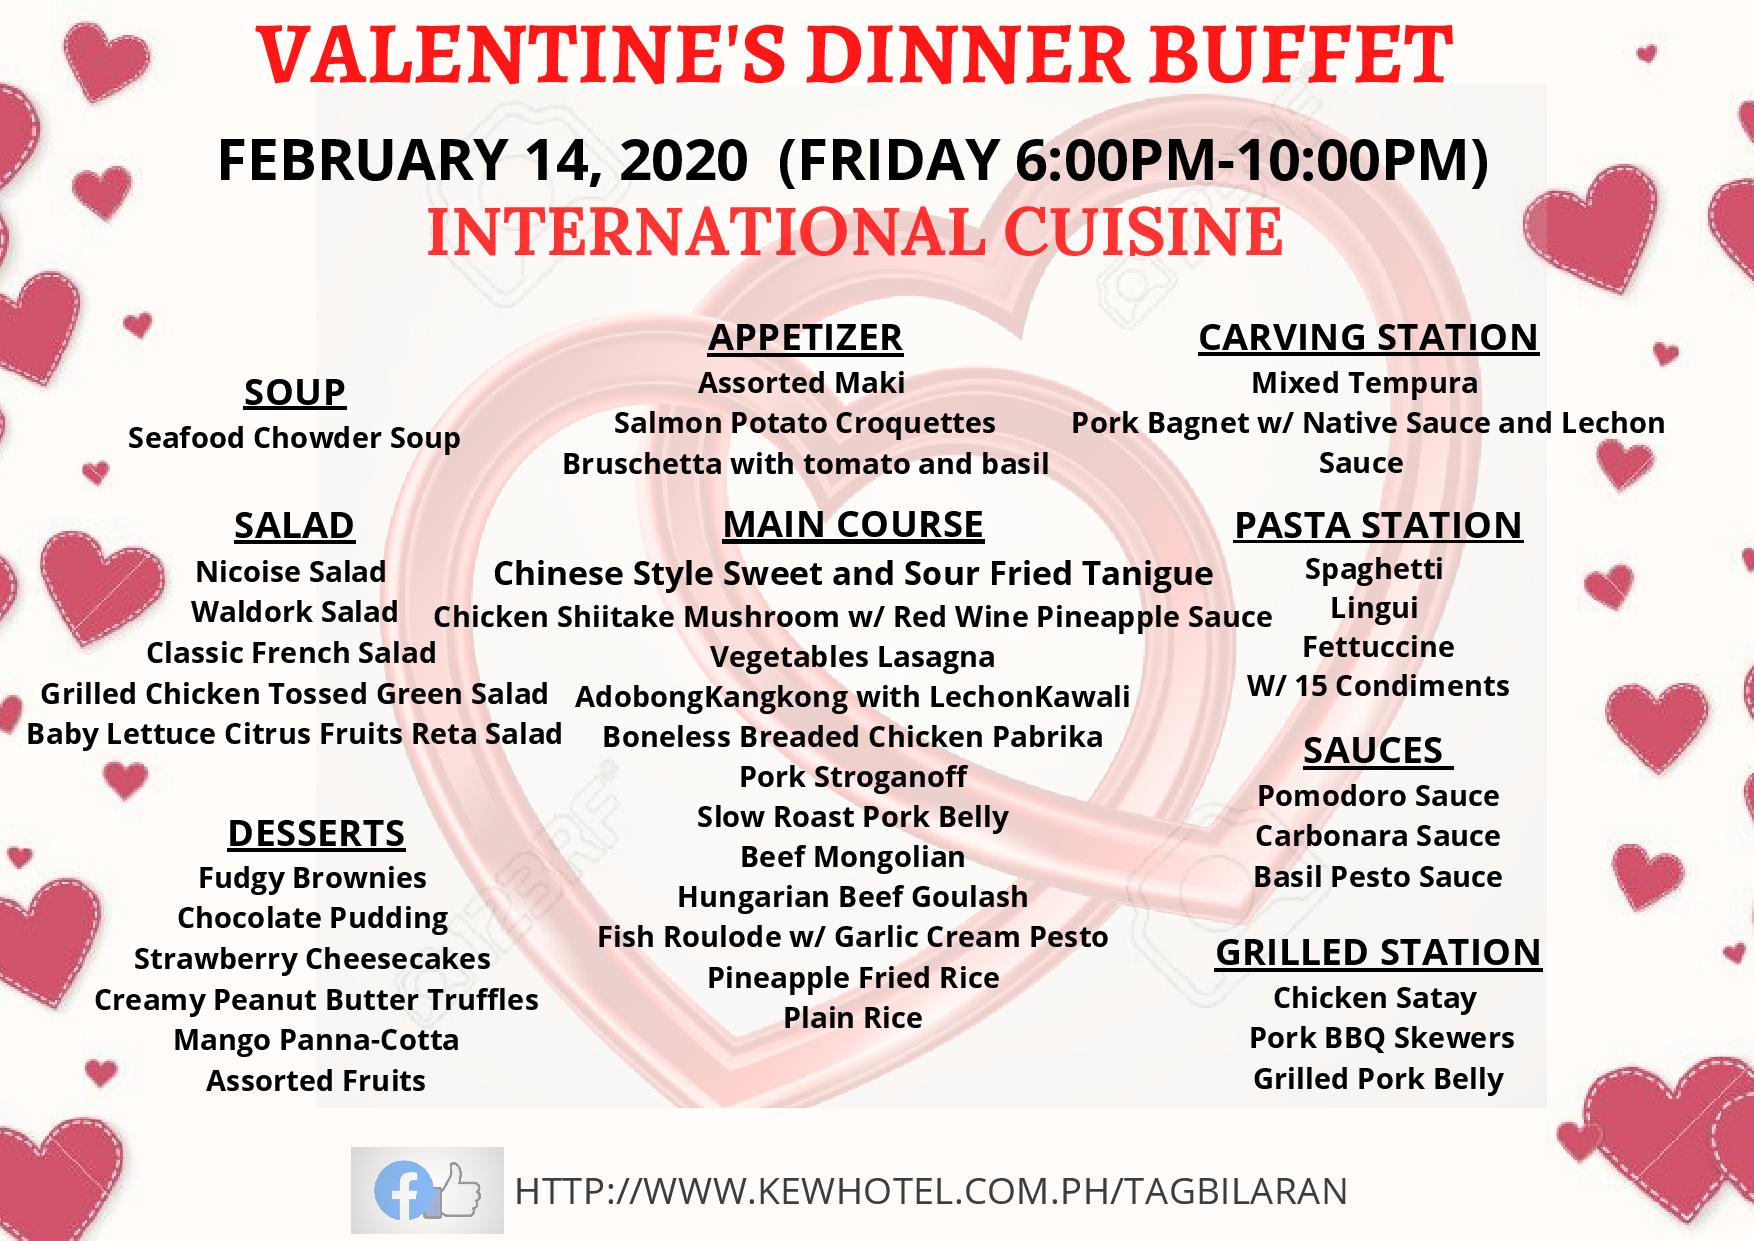 Valentines Dinner Buffet